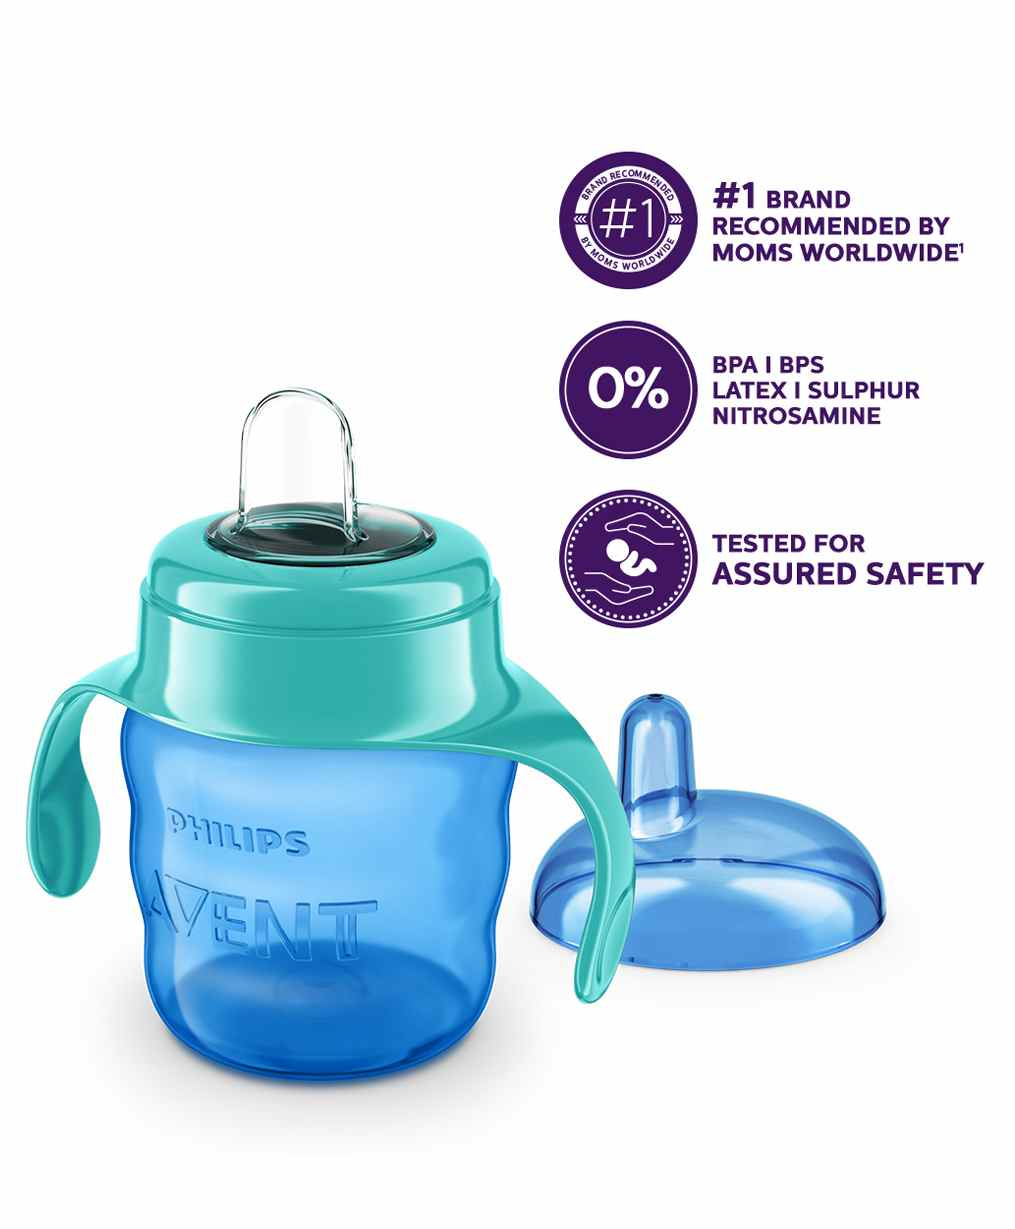 Baby Sippy Cups Sipper Bottles Online India Buy At Sleek Laundry Travel Wash Tube 100 Ml Avent Classic Spout Cup With Handles 200 Color May Vary